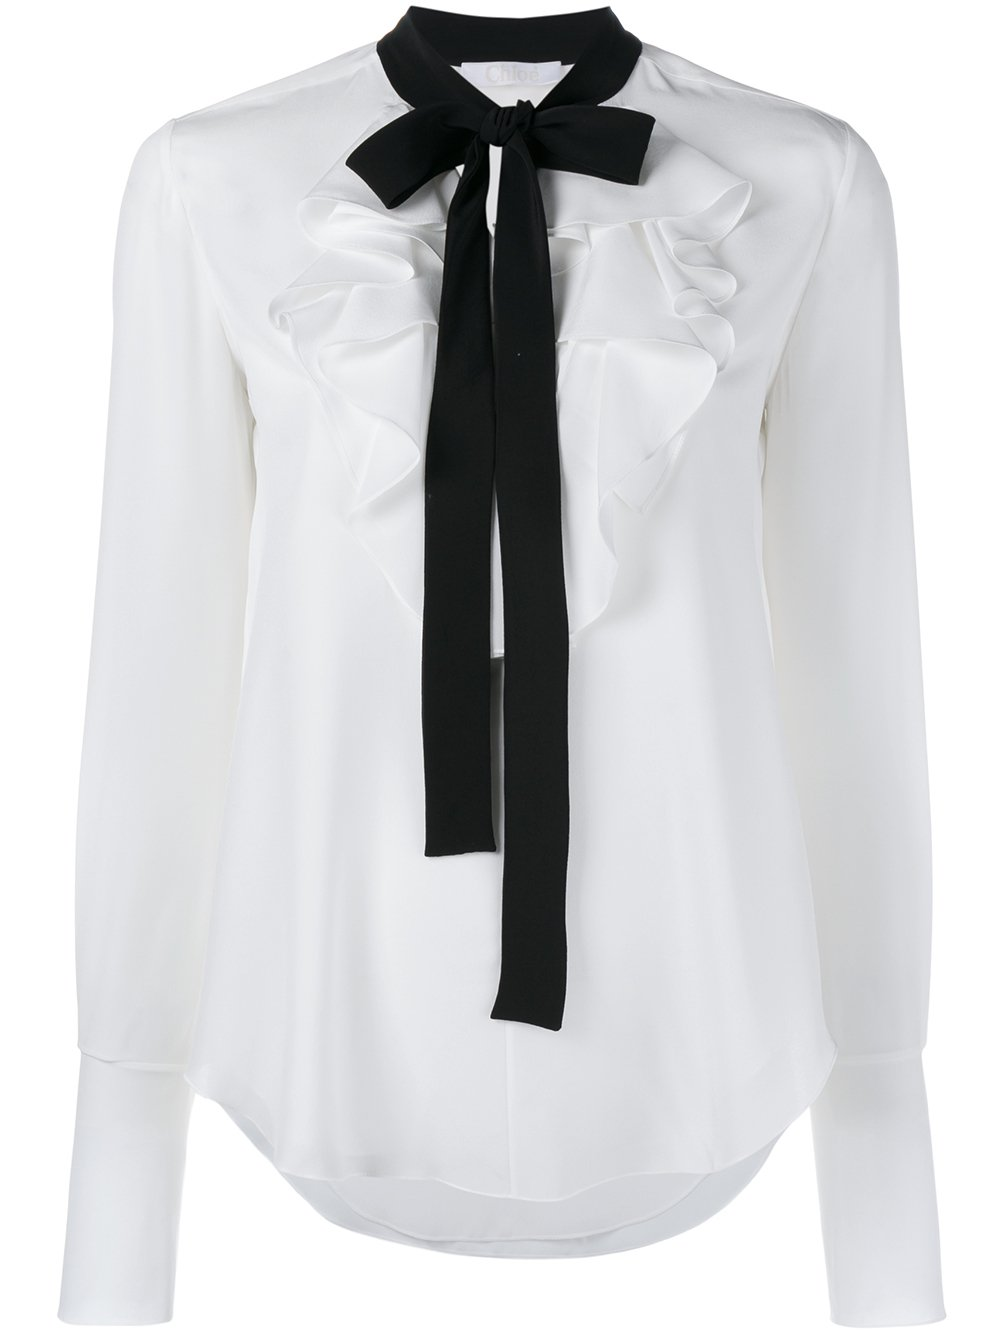 ruffle sleeve blouse - White Chlo Cheap Sale Limited Edition Online Cheap Price TJxsdT